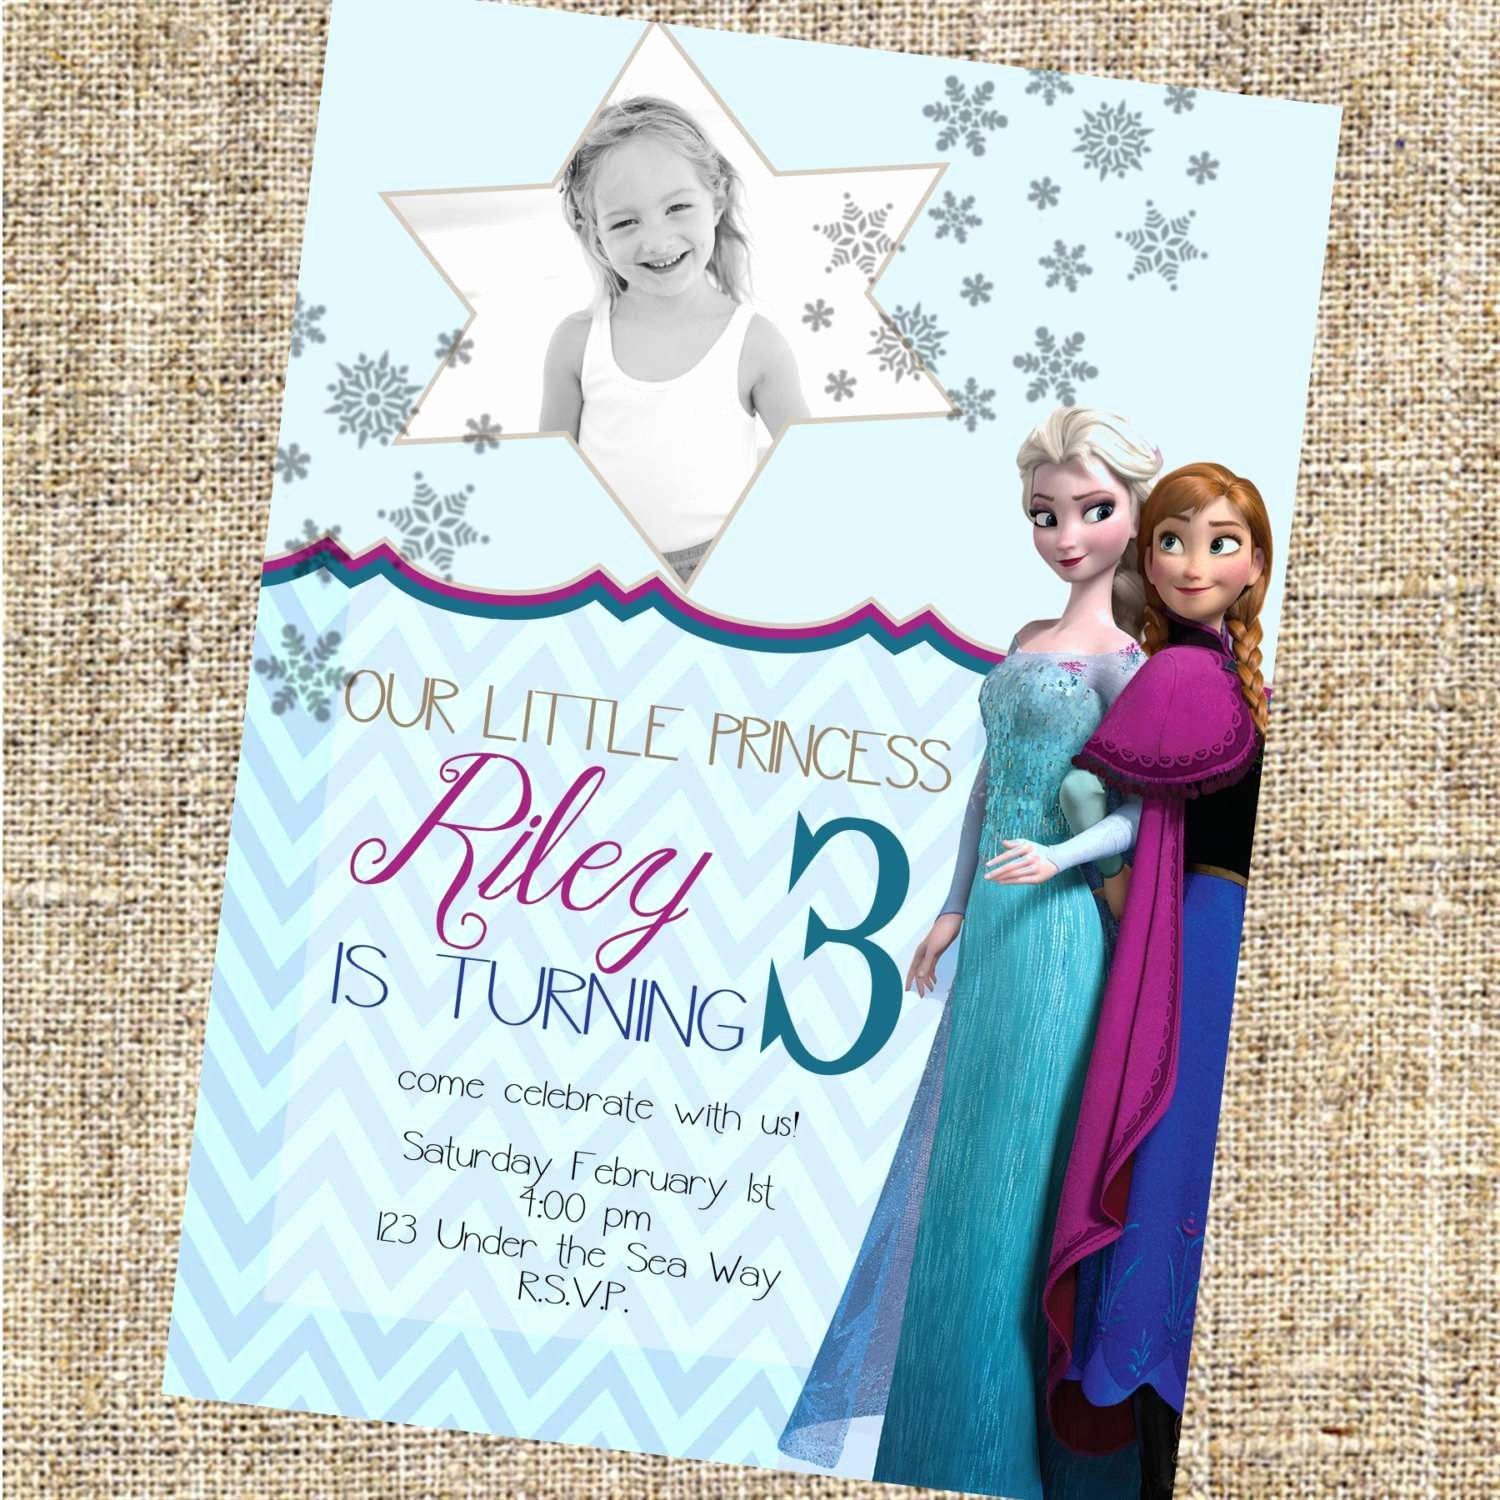 Free Frozen Invite Templates Luxury Image for Frozen Birthday Invitations Free Templates